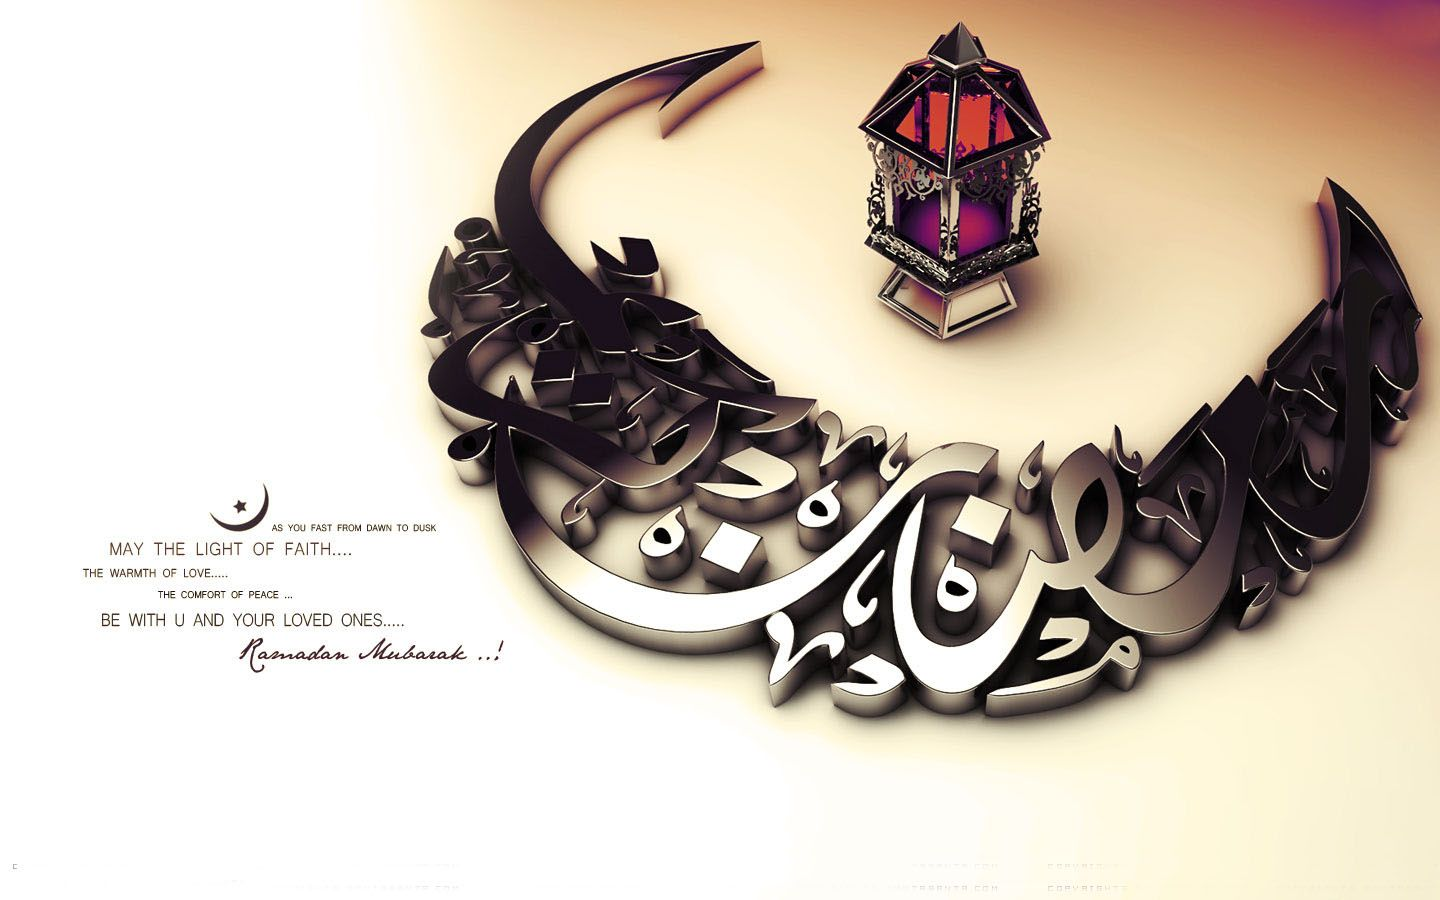 Hd wallpaper ramzan mubarak - Ramadan Mubarak Ideetjes Pinterest Ramadan Mubarak Ramadan And Wallpaper